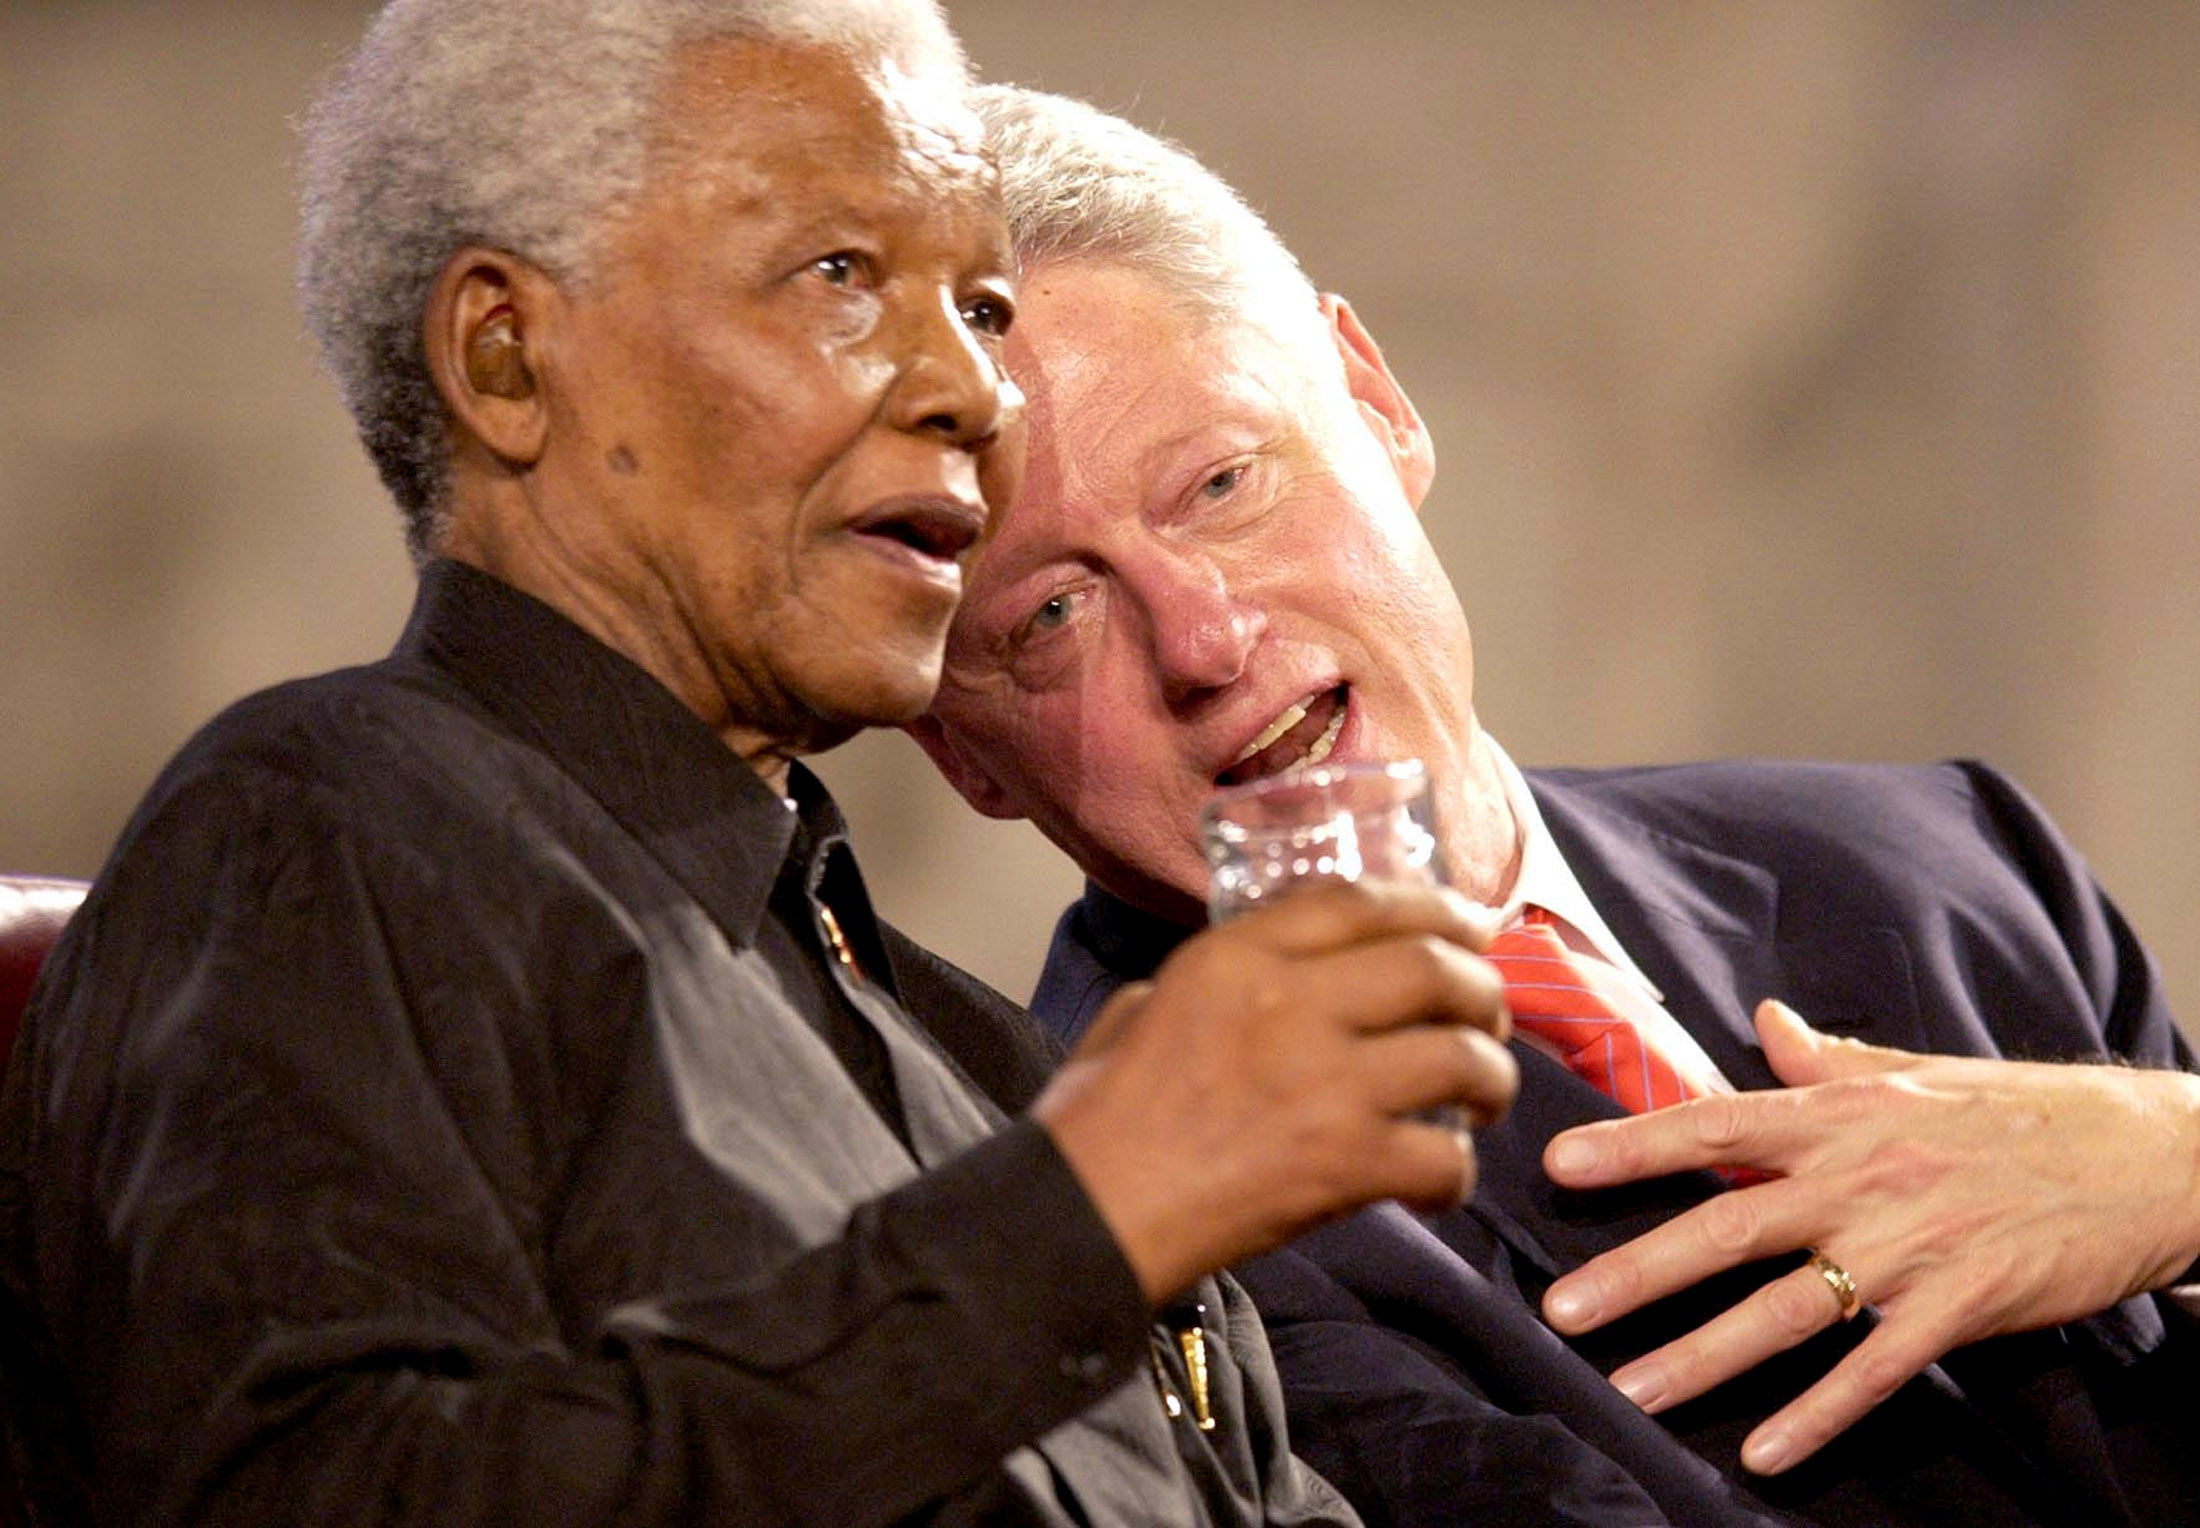 Former U.S President Bill Clinton (R) and former South African President Nelson Mandela (L) speak during a Gala night in Westminster Hall, London, July 2, 2003. The two men and Britain's Prime Minister Tony Blair attended the Gala night on Wednesday to mark the centenary of the Rhodes Trust and the establishment of the Mandela Rhodes Foundation.